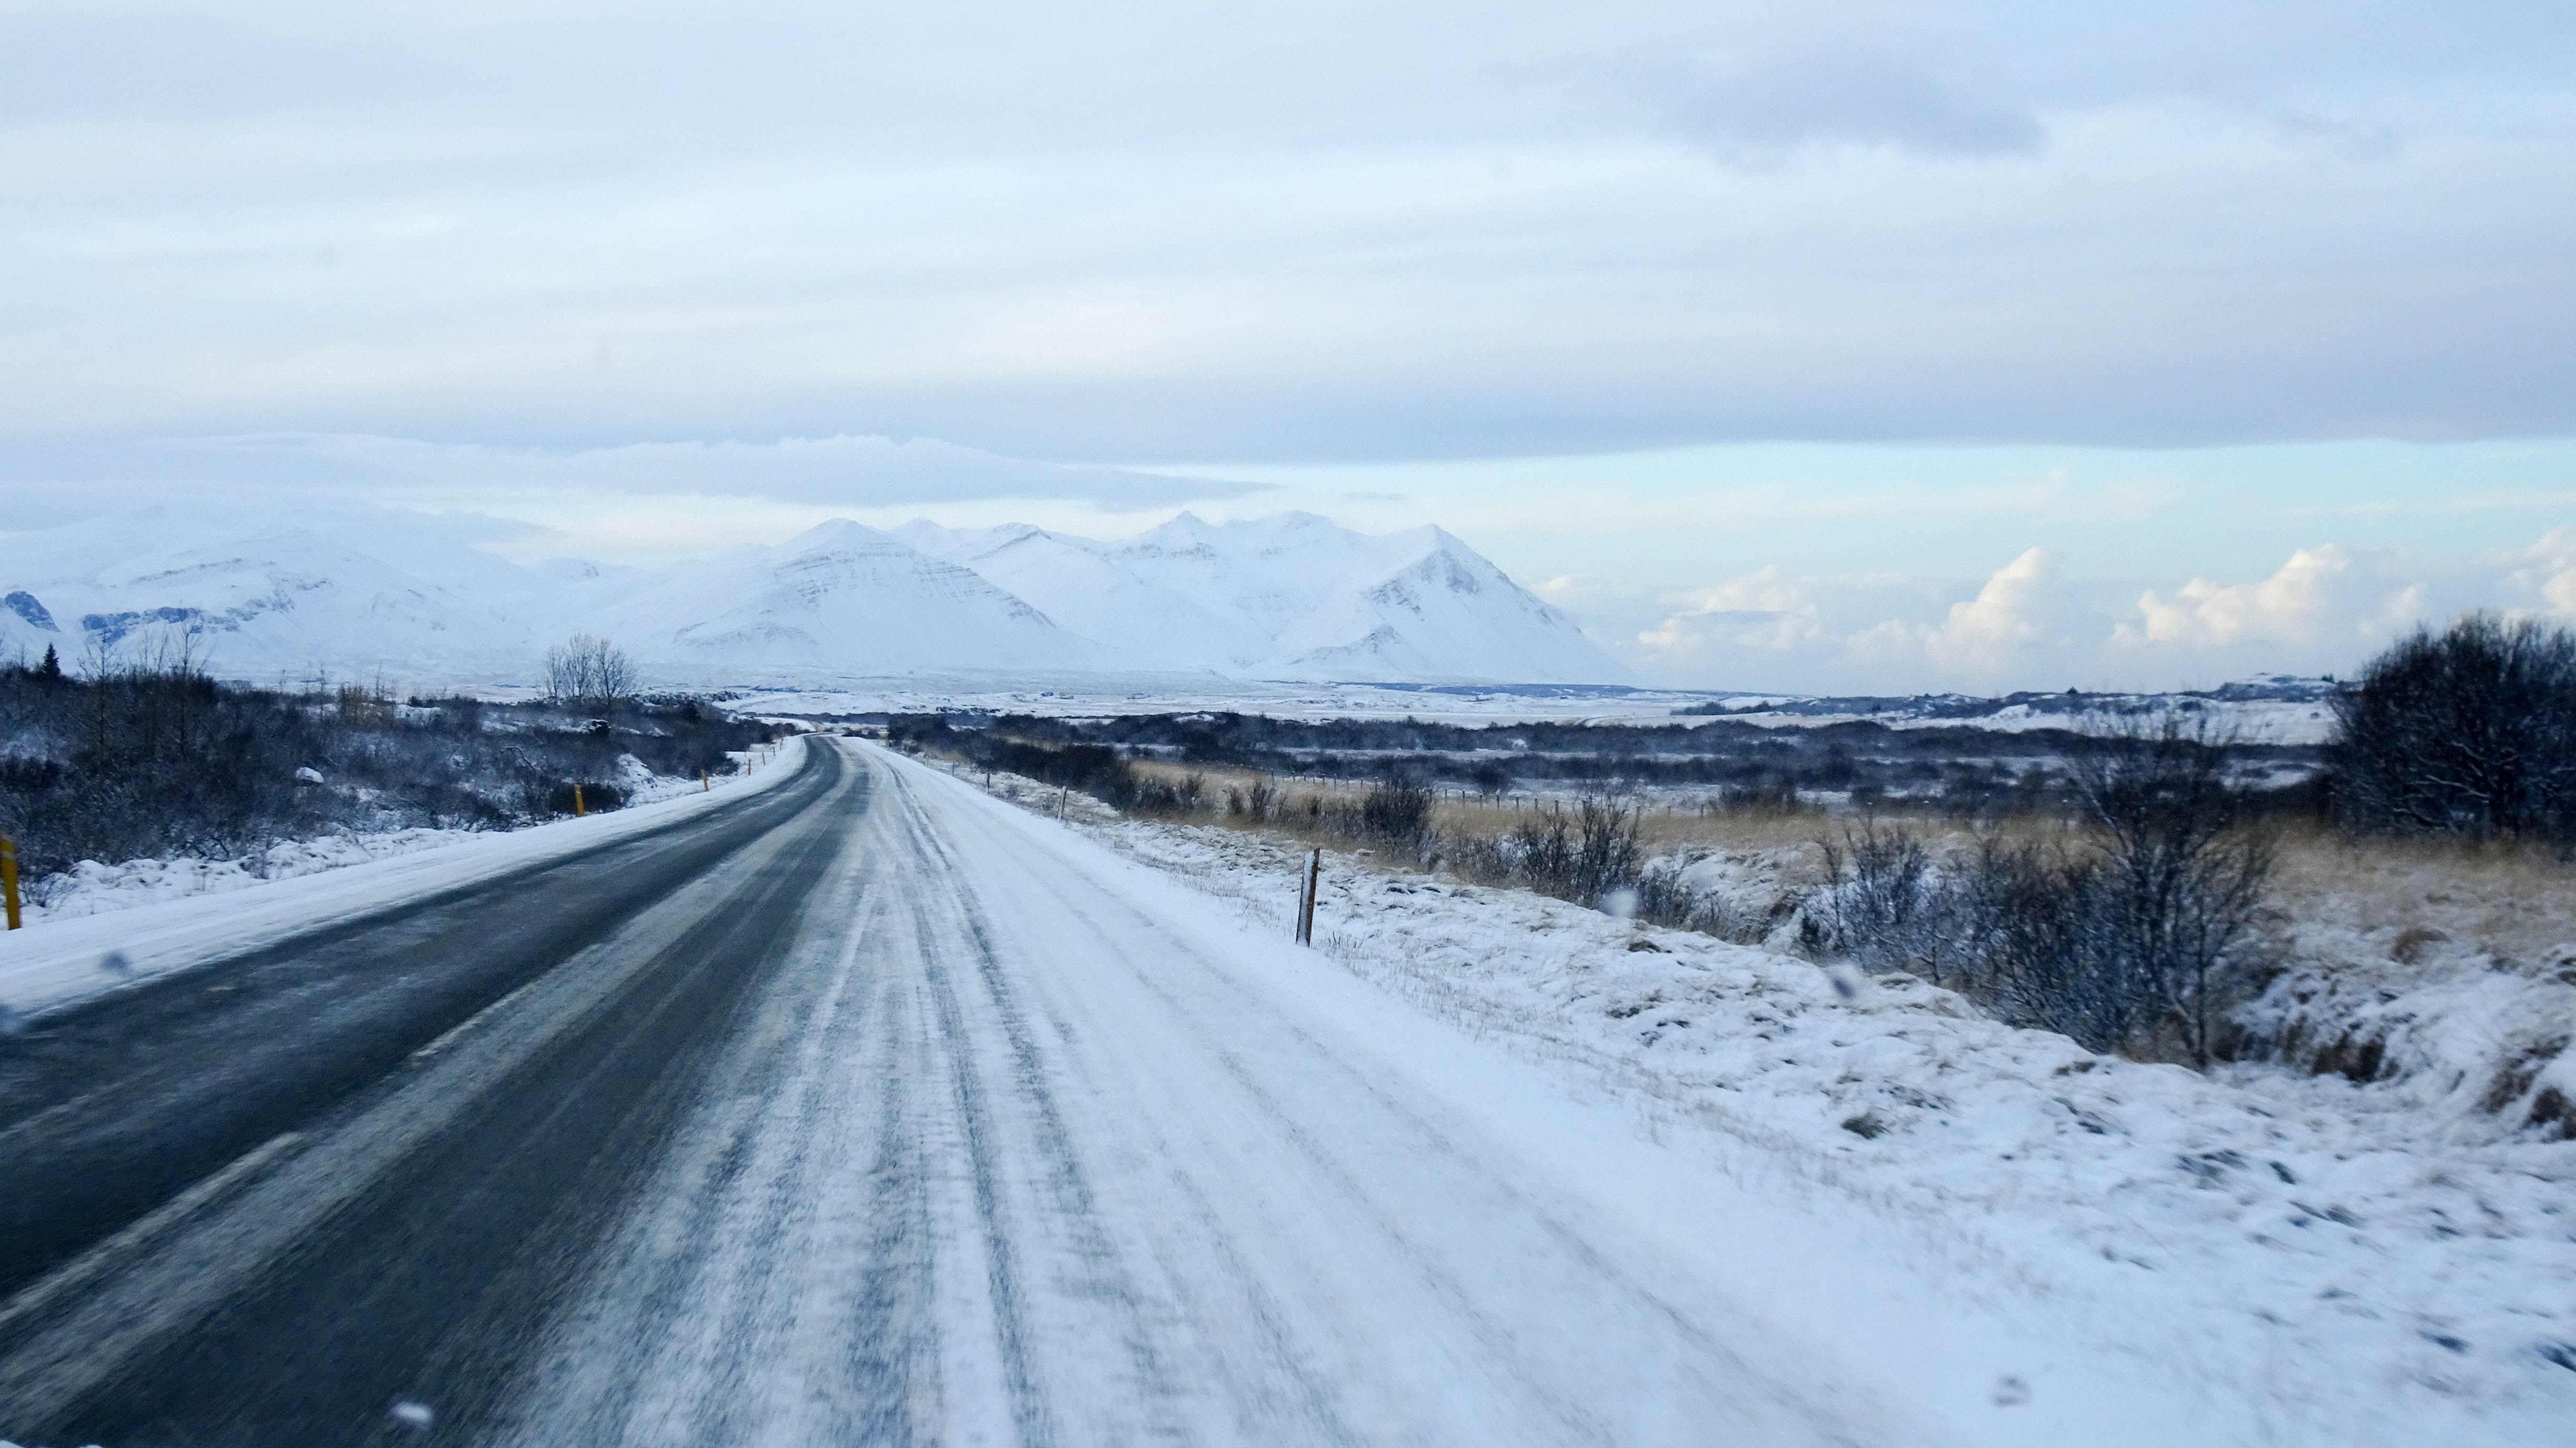 asphalt road covered with snow under white cloudy sky at daytime